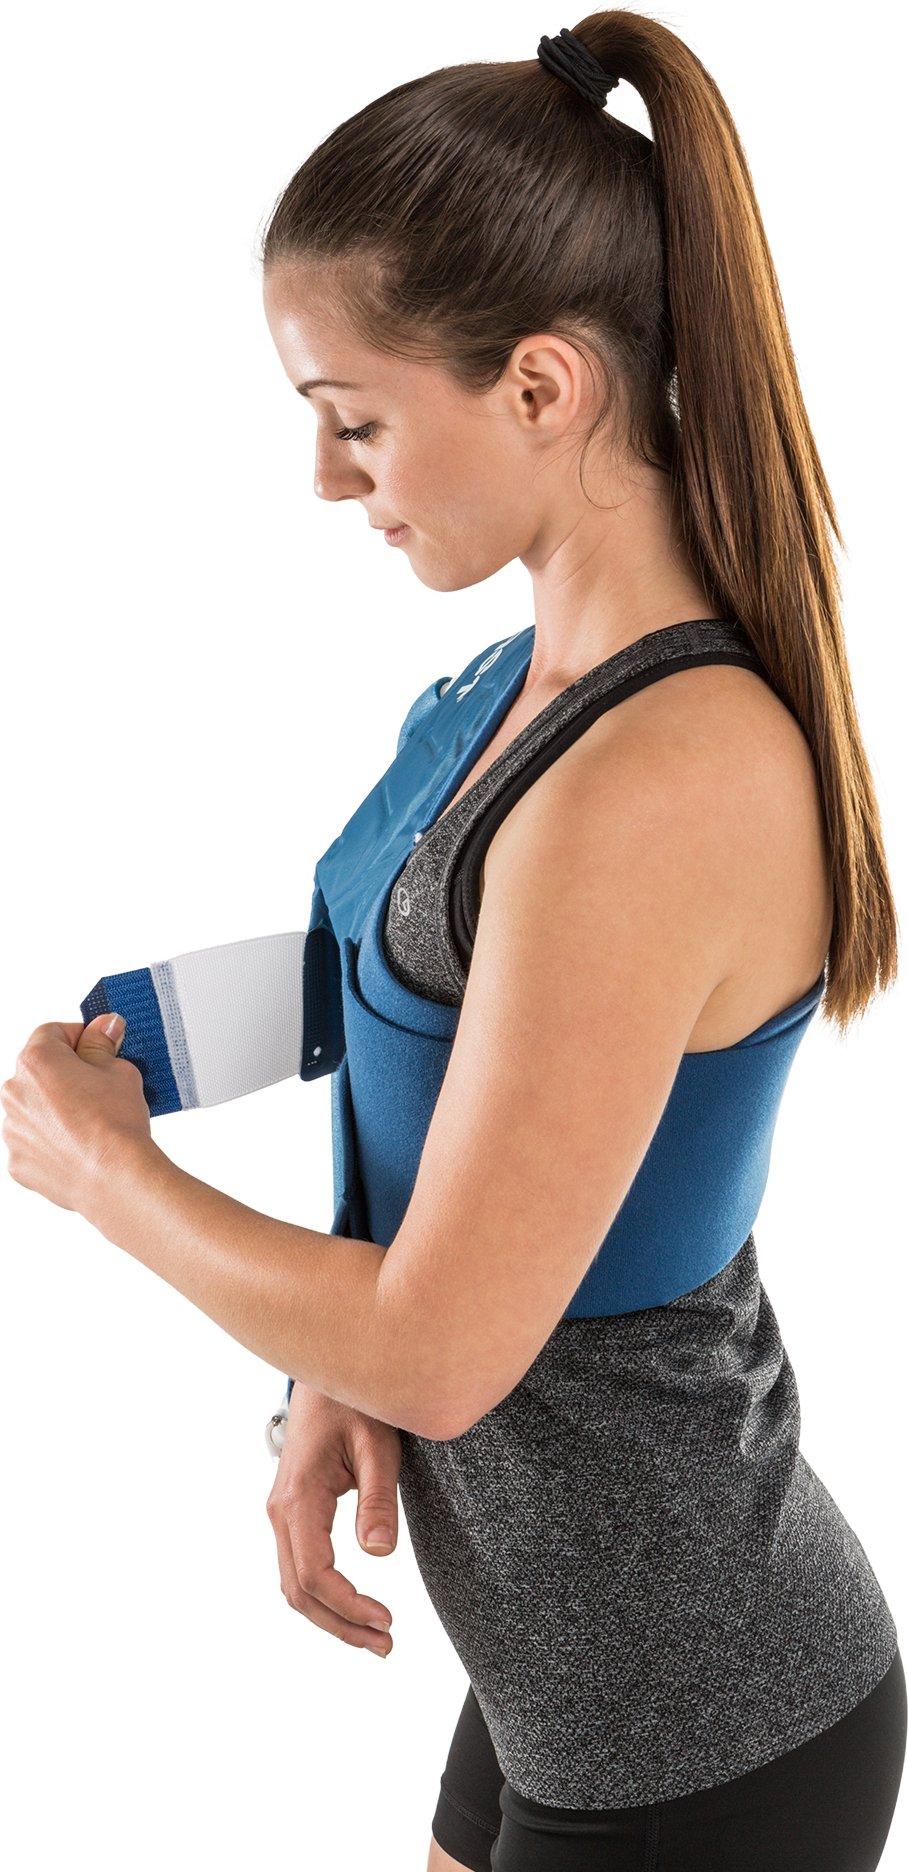 DonJoy Aircast Cryo/Cuff Cold Therapy: Shoulder Cryo/Cuff with Non-Motorized (Gravity-Fed) Cooler, X-Large by DonJoy (Image #4)